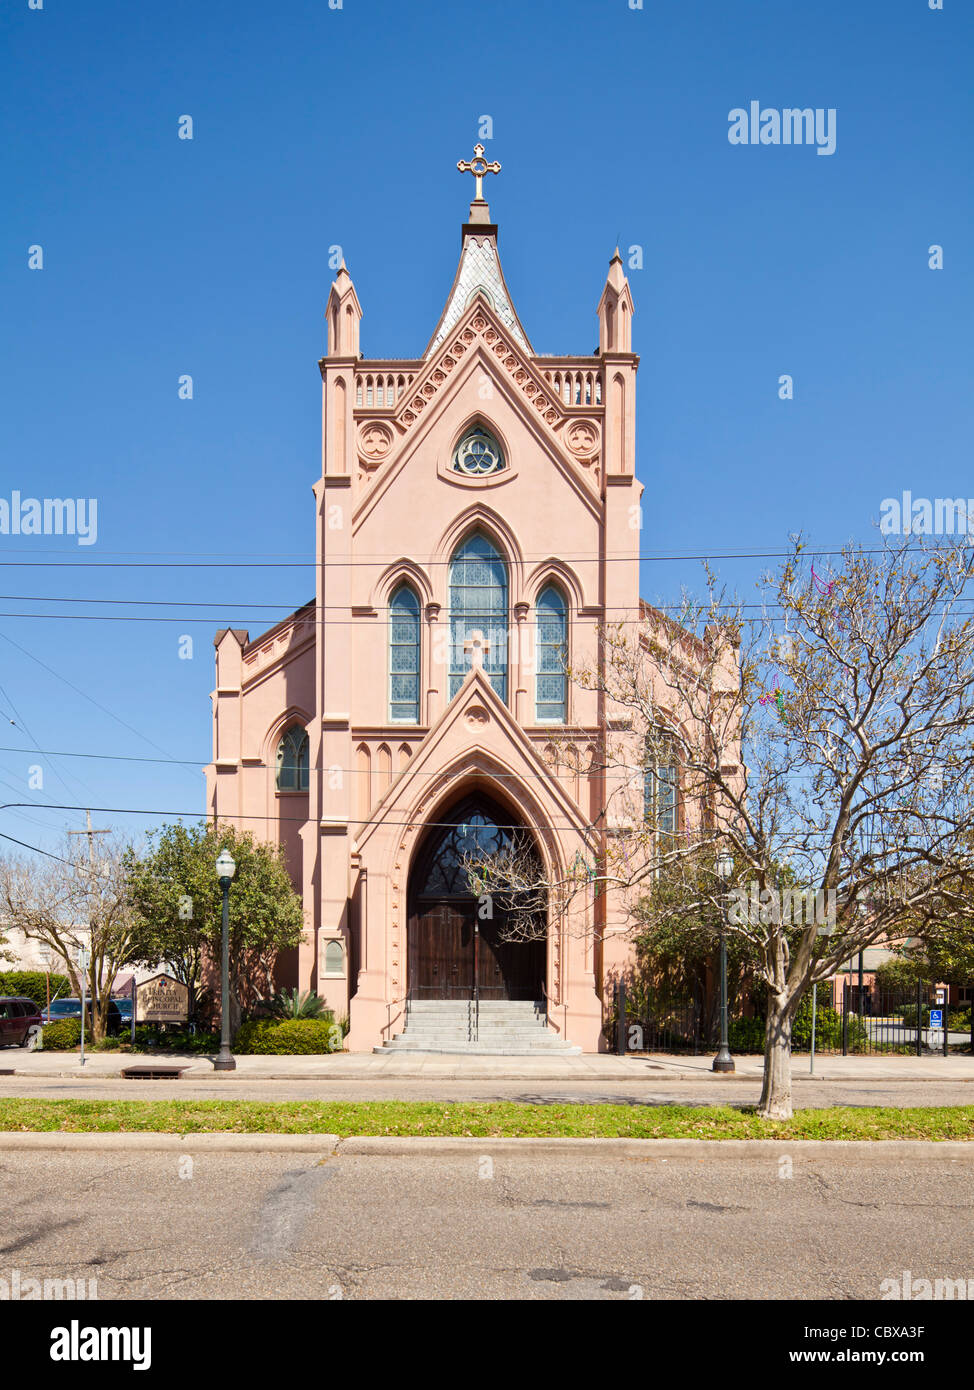 Trinity Episcopal Church, New Orleans - Stock Image